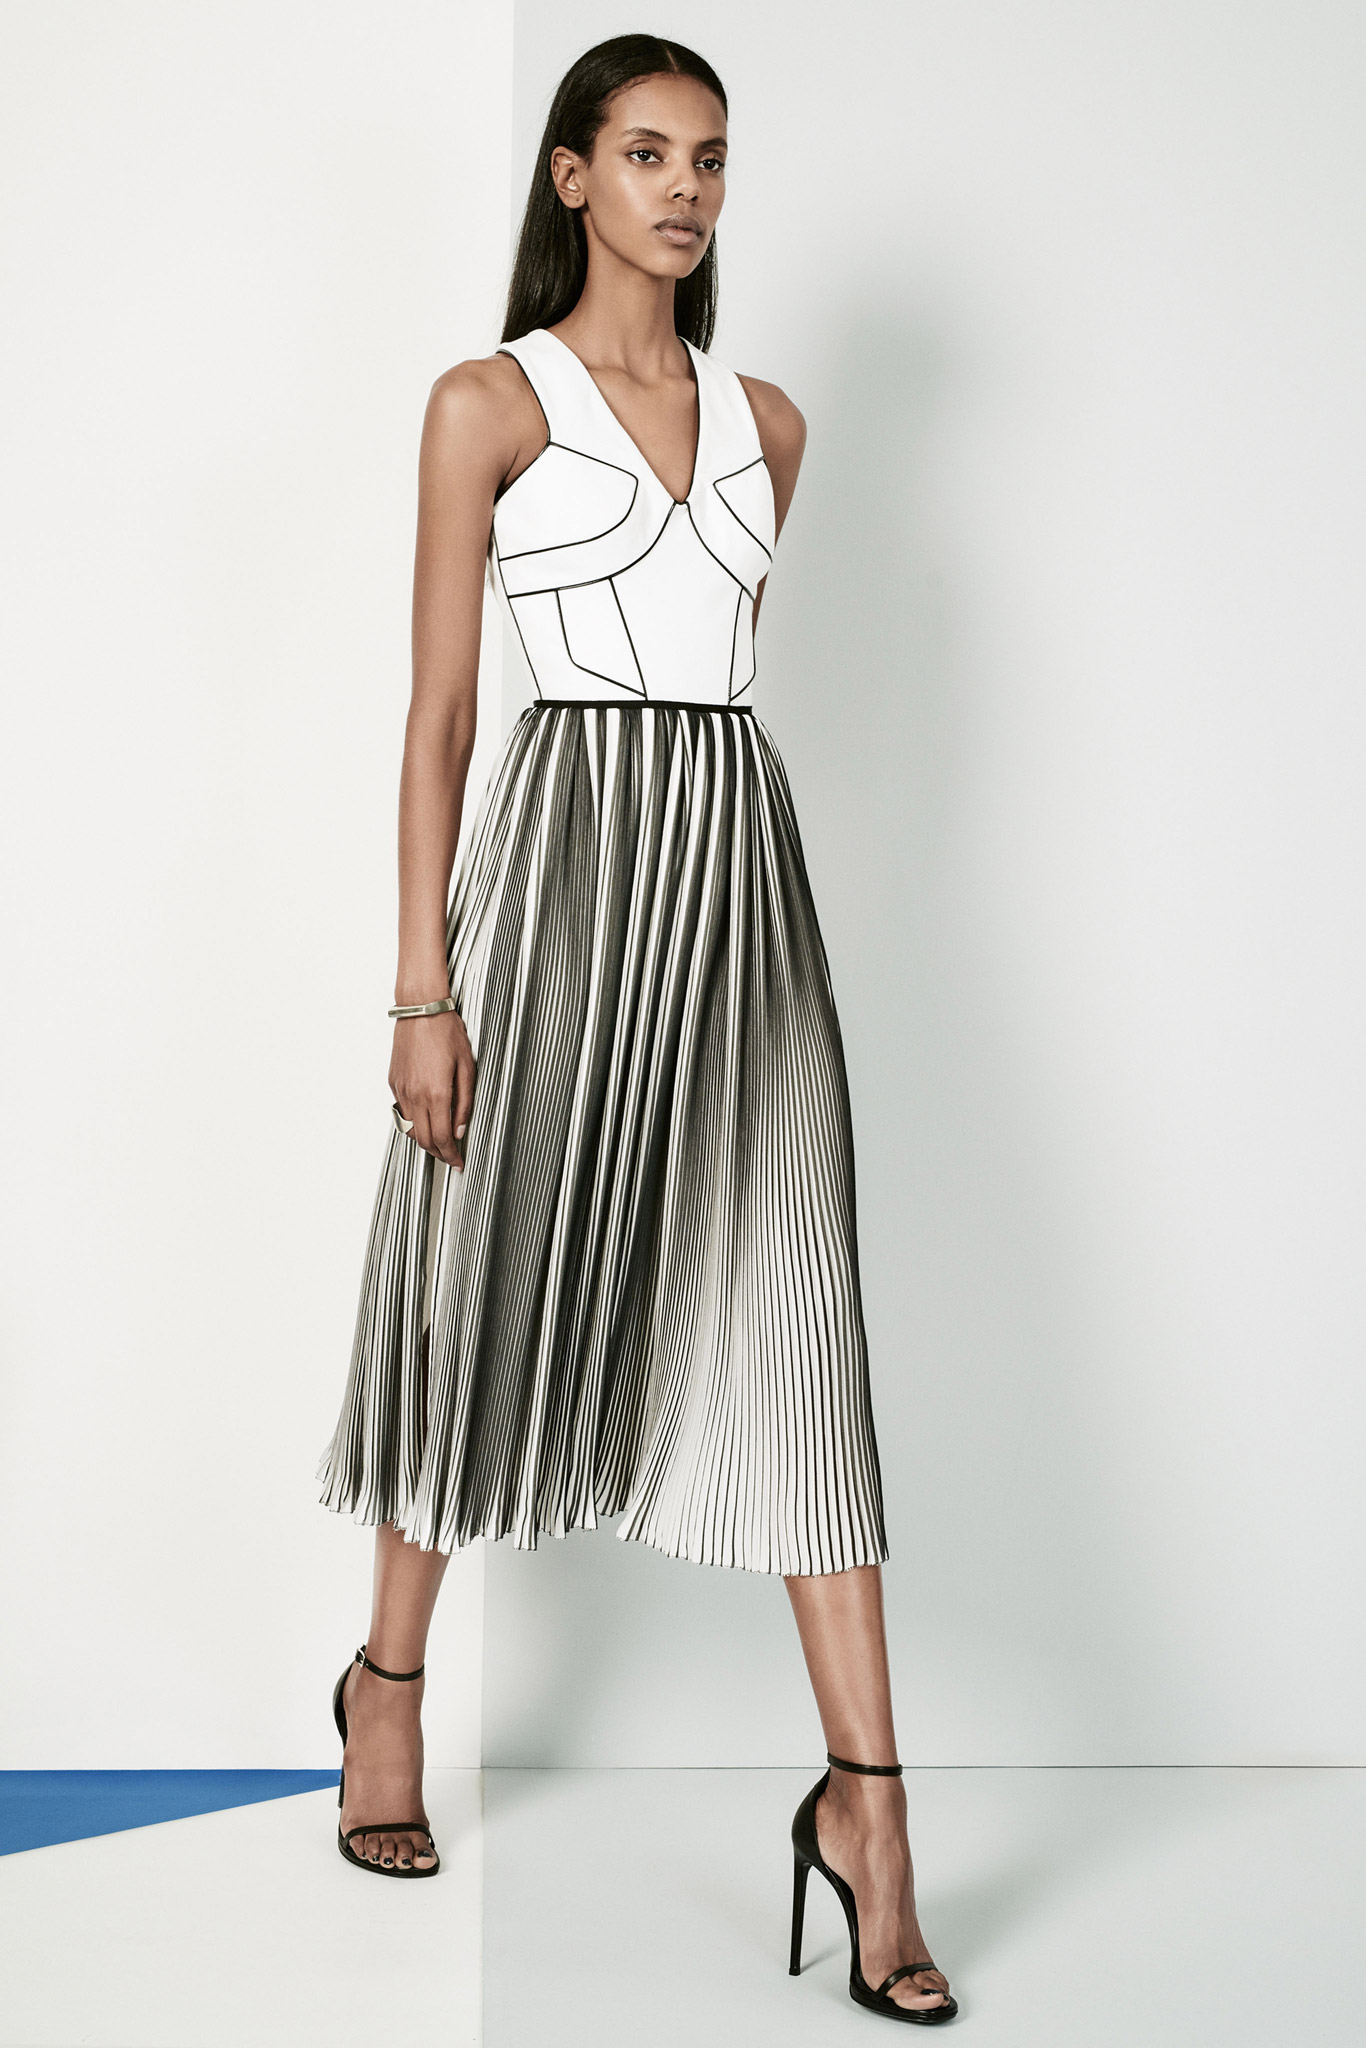 Pacific Kitchen Staten Island Kimora Lee Simmons 2015 Kls Kimora Lee Simmons Pre Fall 2015